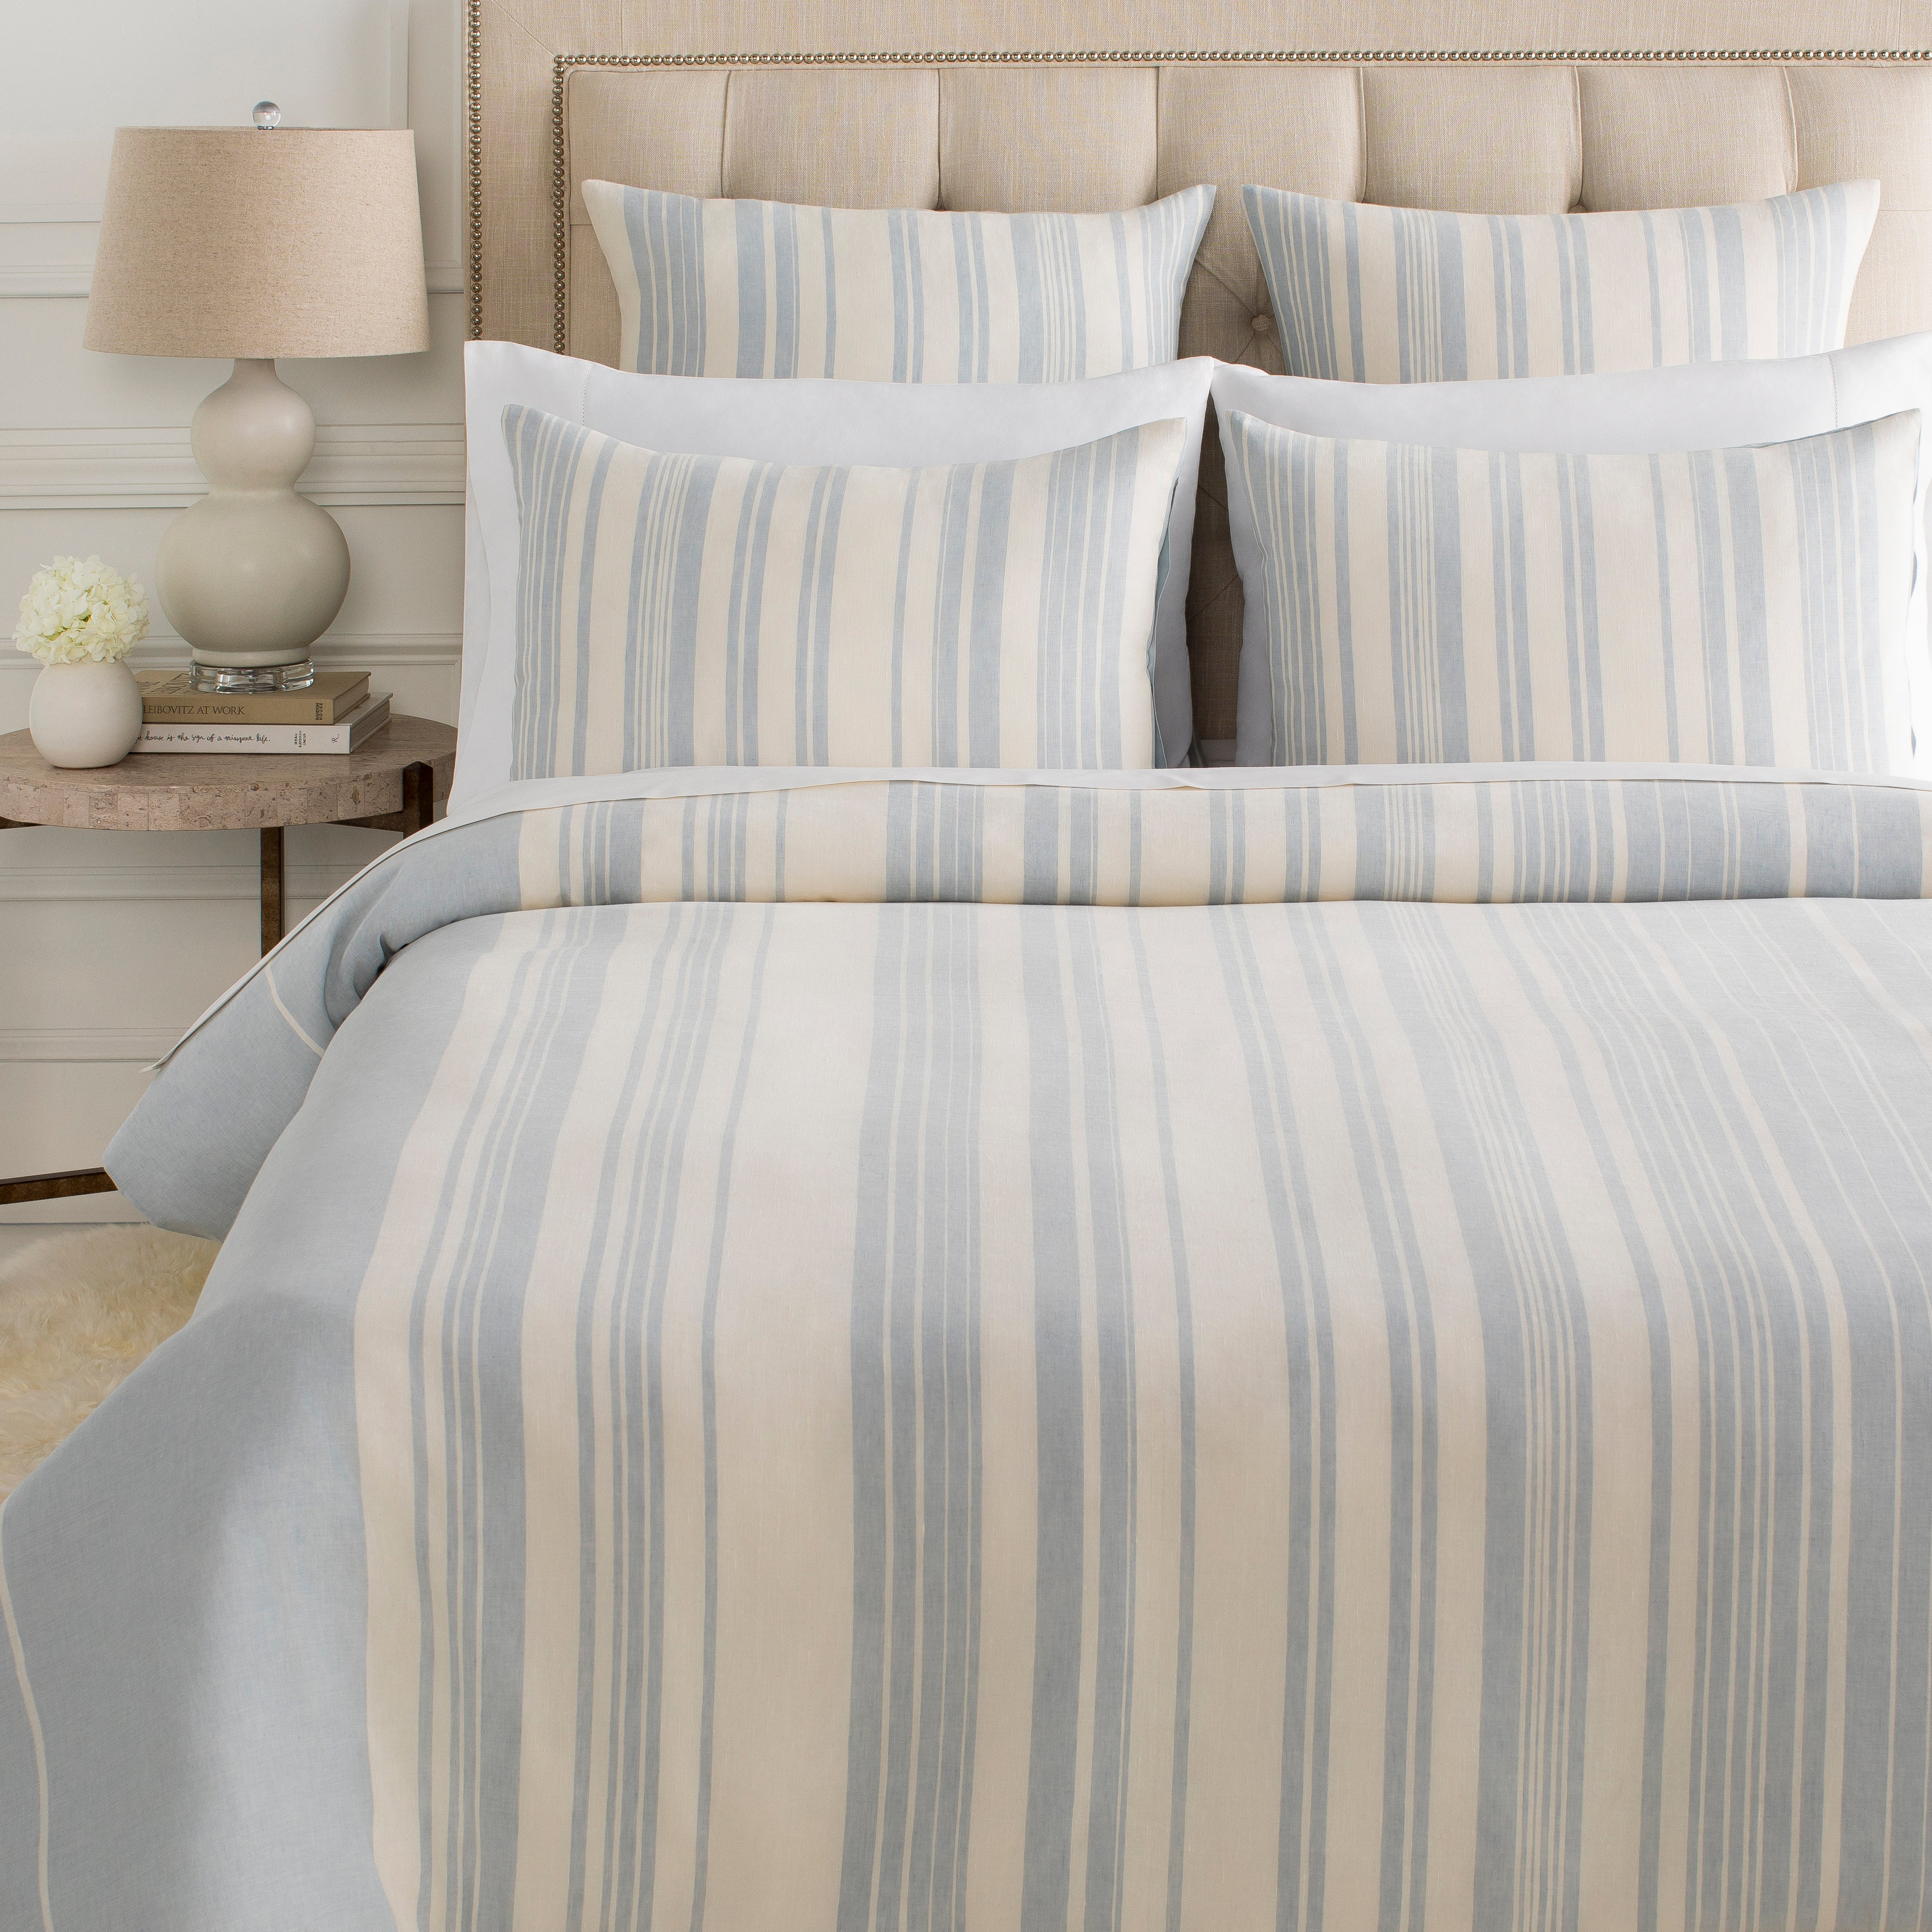 Baris Bedding in Pale Blue & Ivory